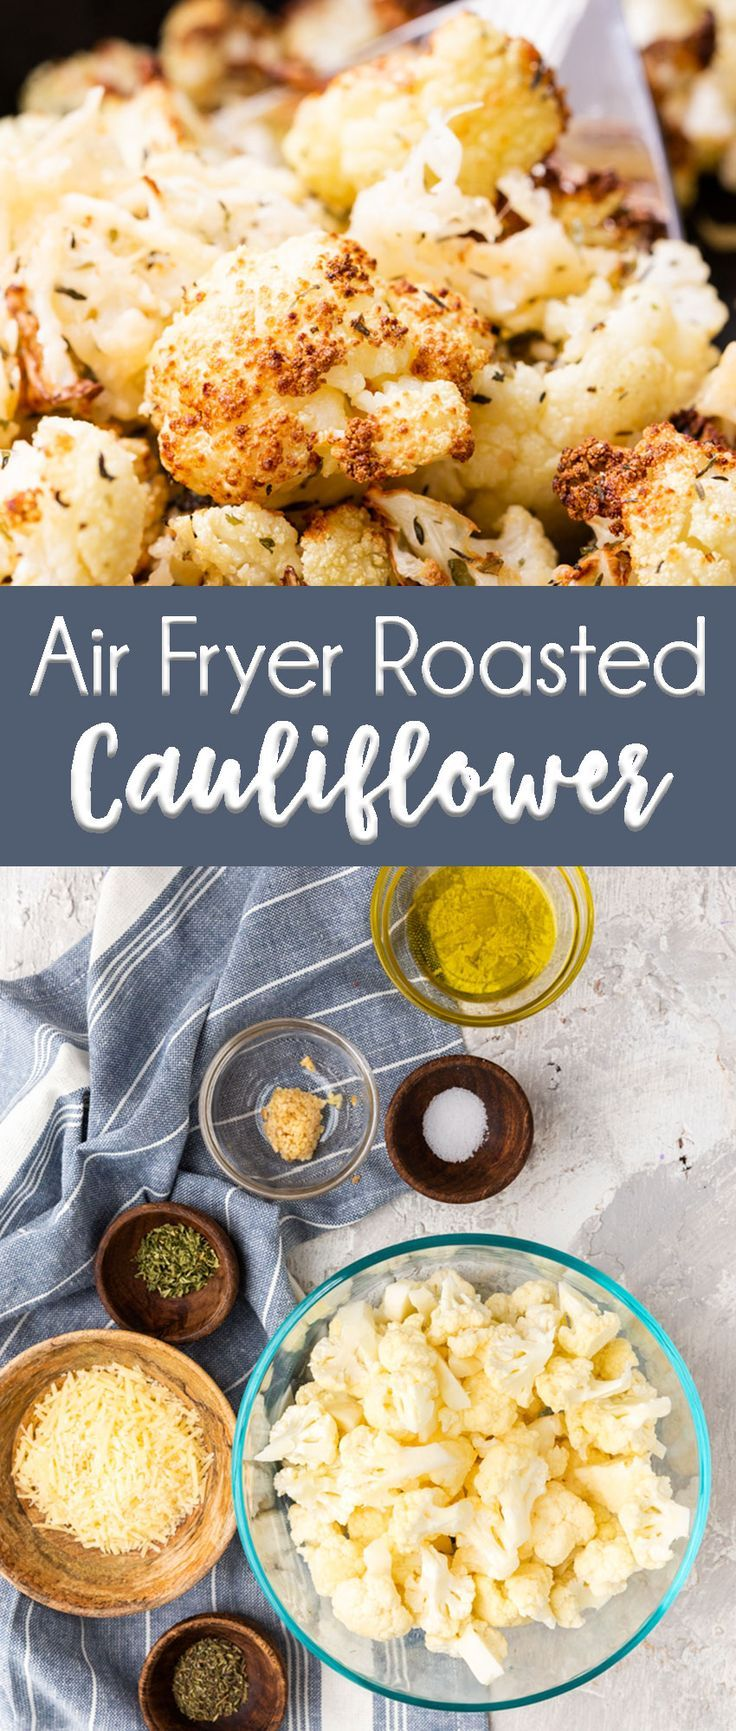 Air Fryer Roasted Cauliflower #healthyrecipes